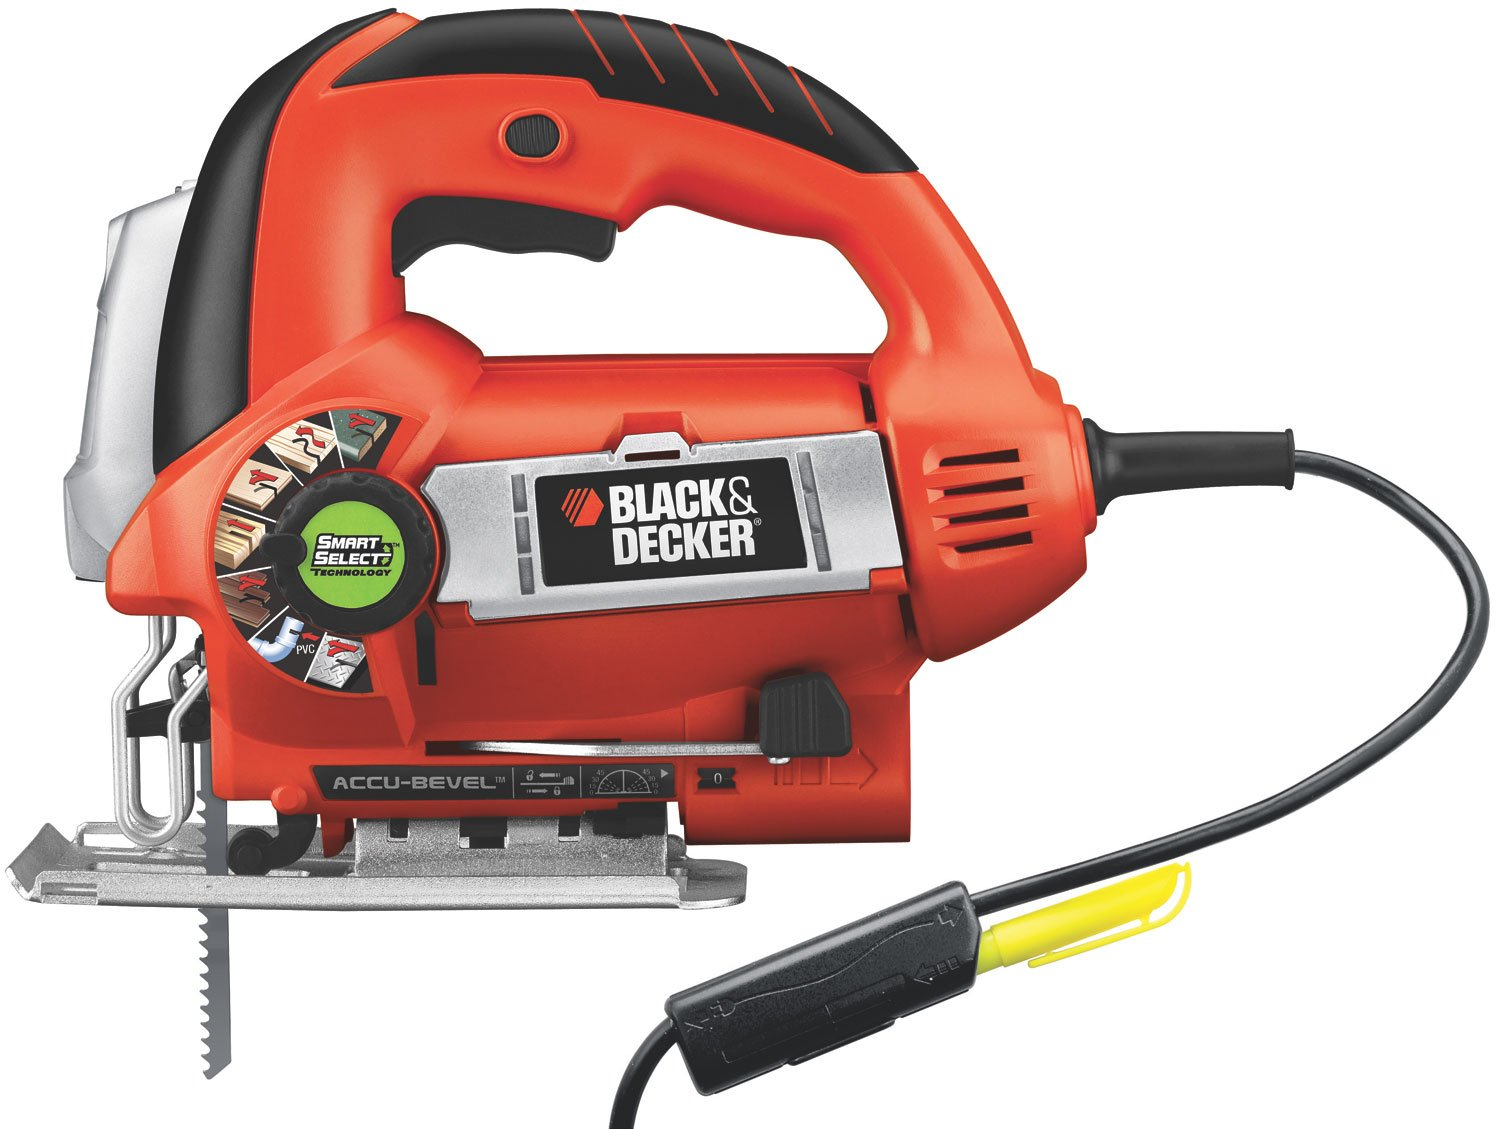 BLACK+DECKER JS670V LineFinder Orbital Jigsaw with SmartSelect Technology